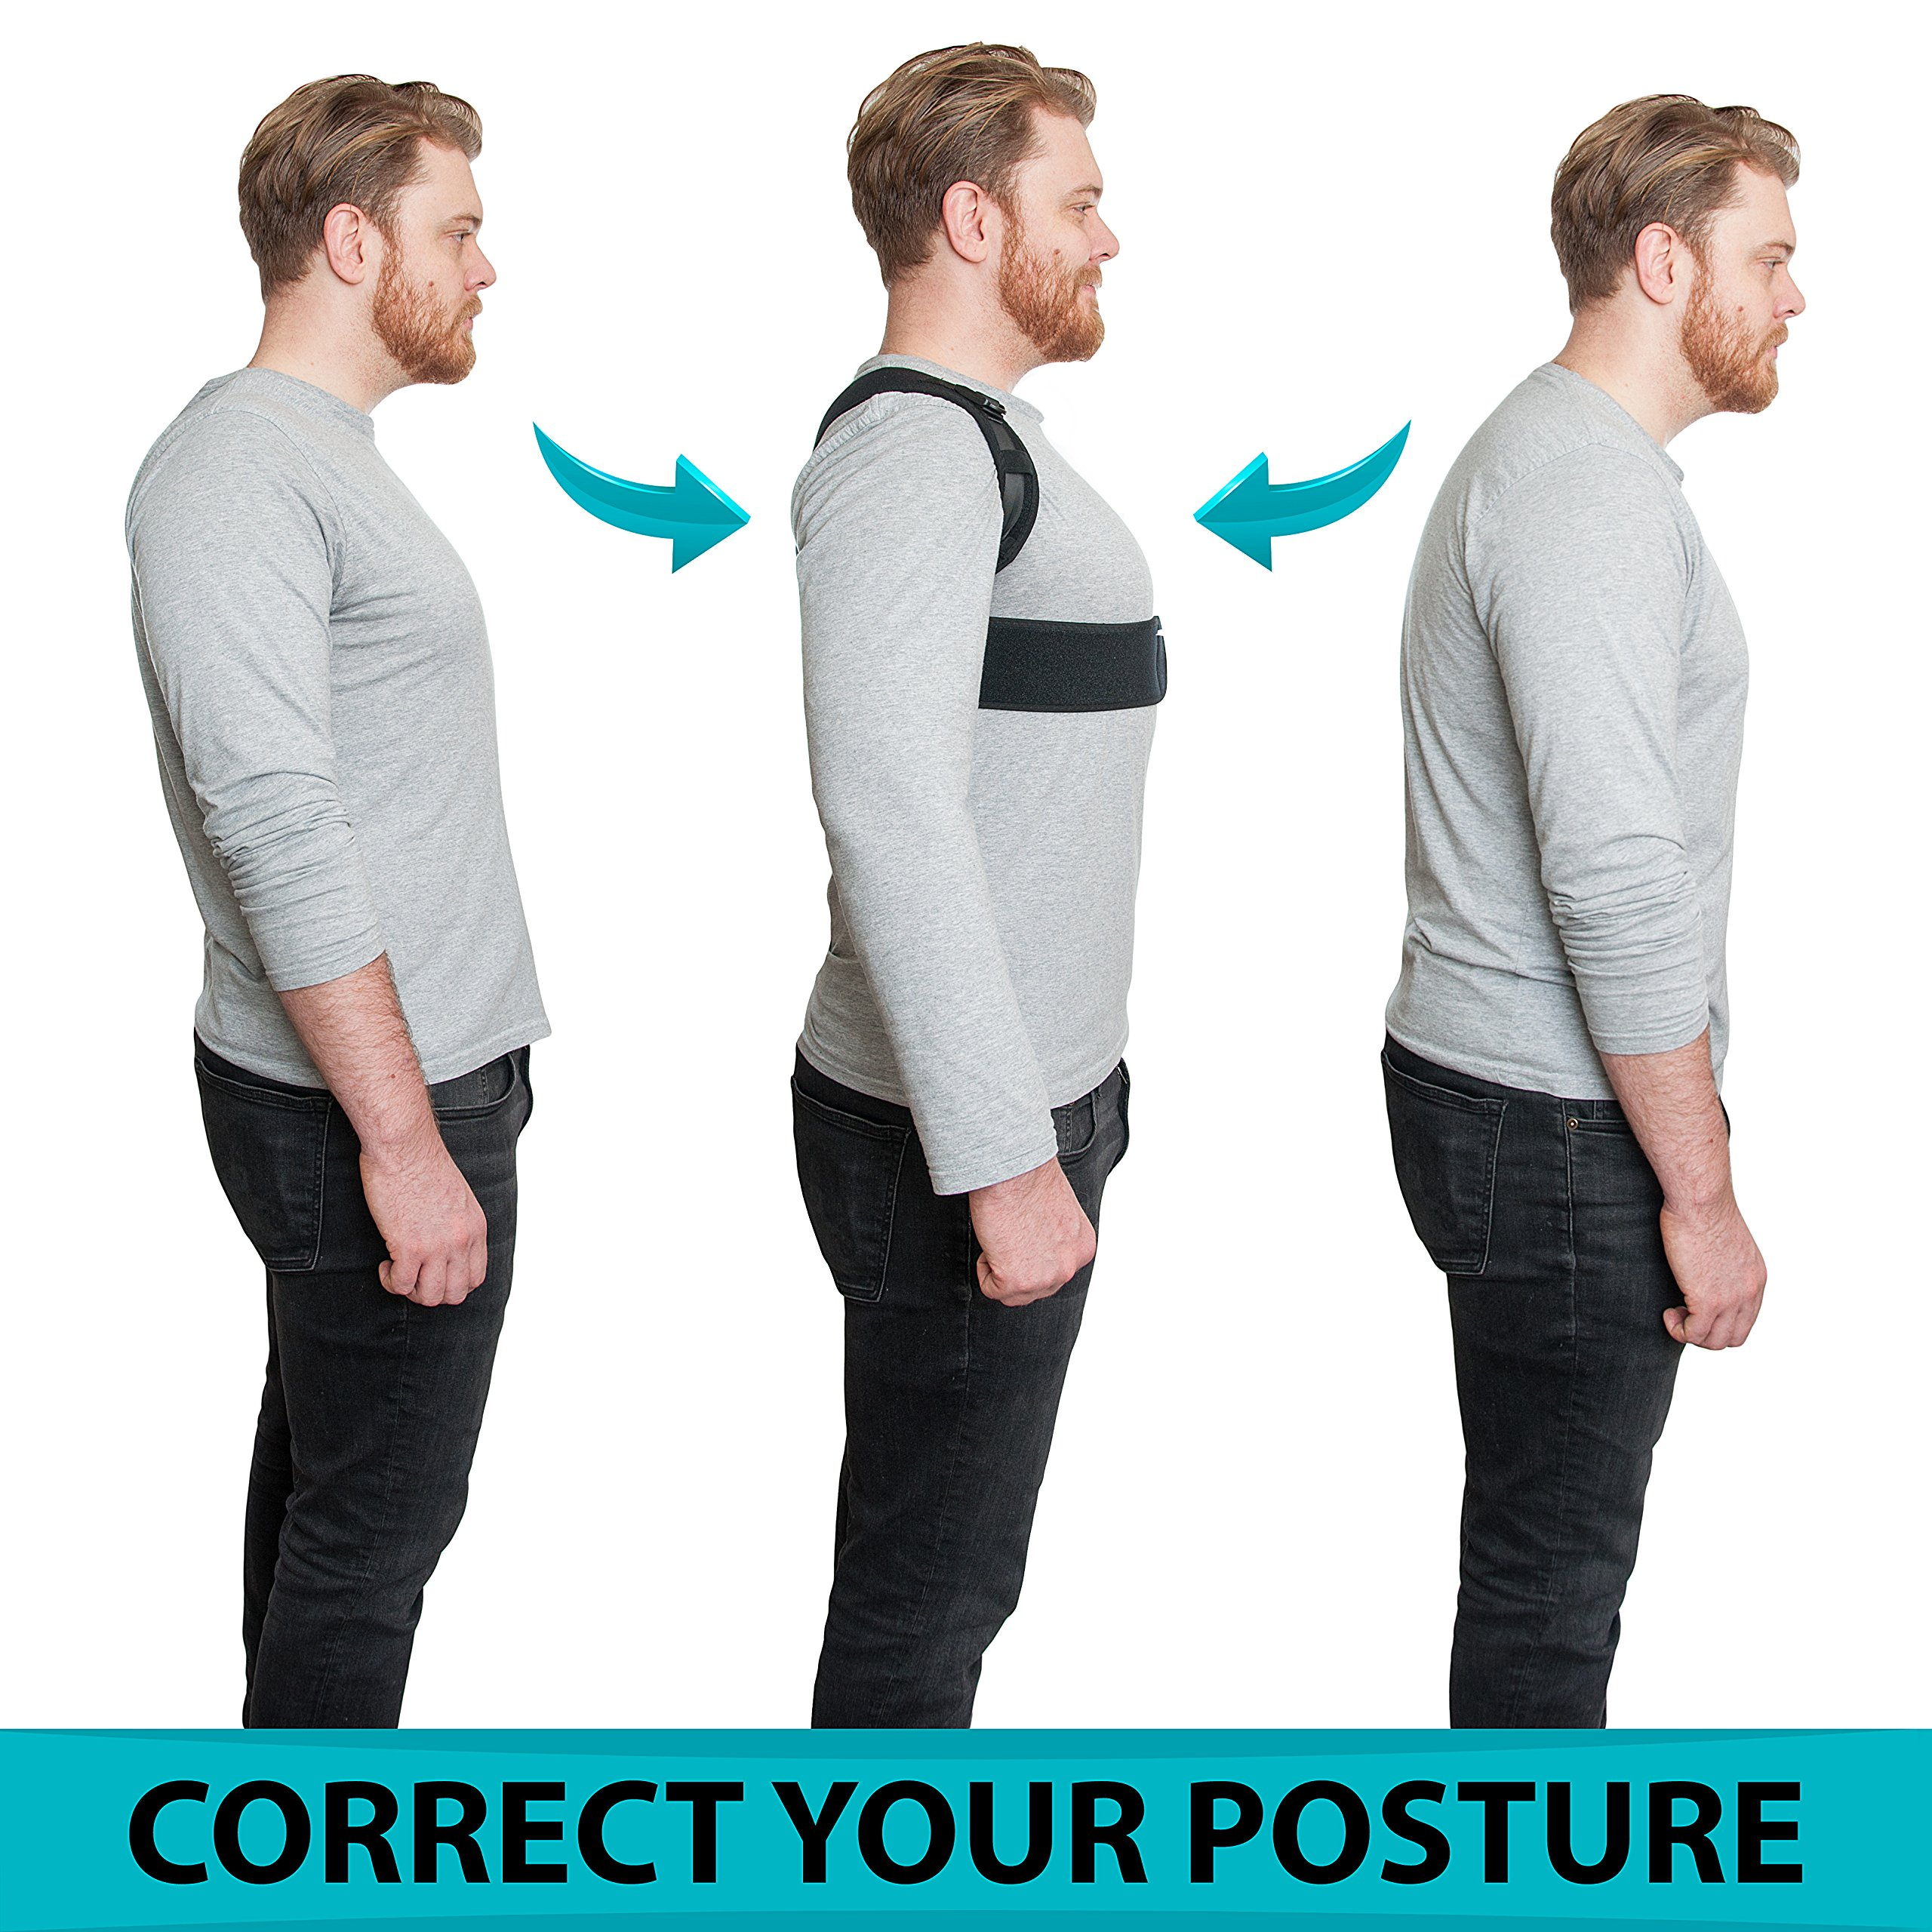 PREMIUM Back Brace Support Corrector by ABBINY Health, Shoulder Support for Men and Women Providing Relief Neck and Back pain, Improves the Posture 100% Comfortable and Breathable. Kyphosis Corrector